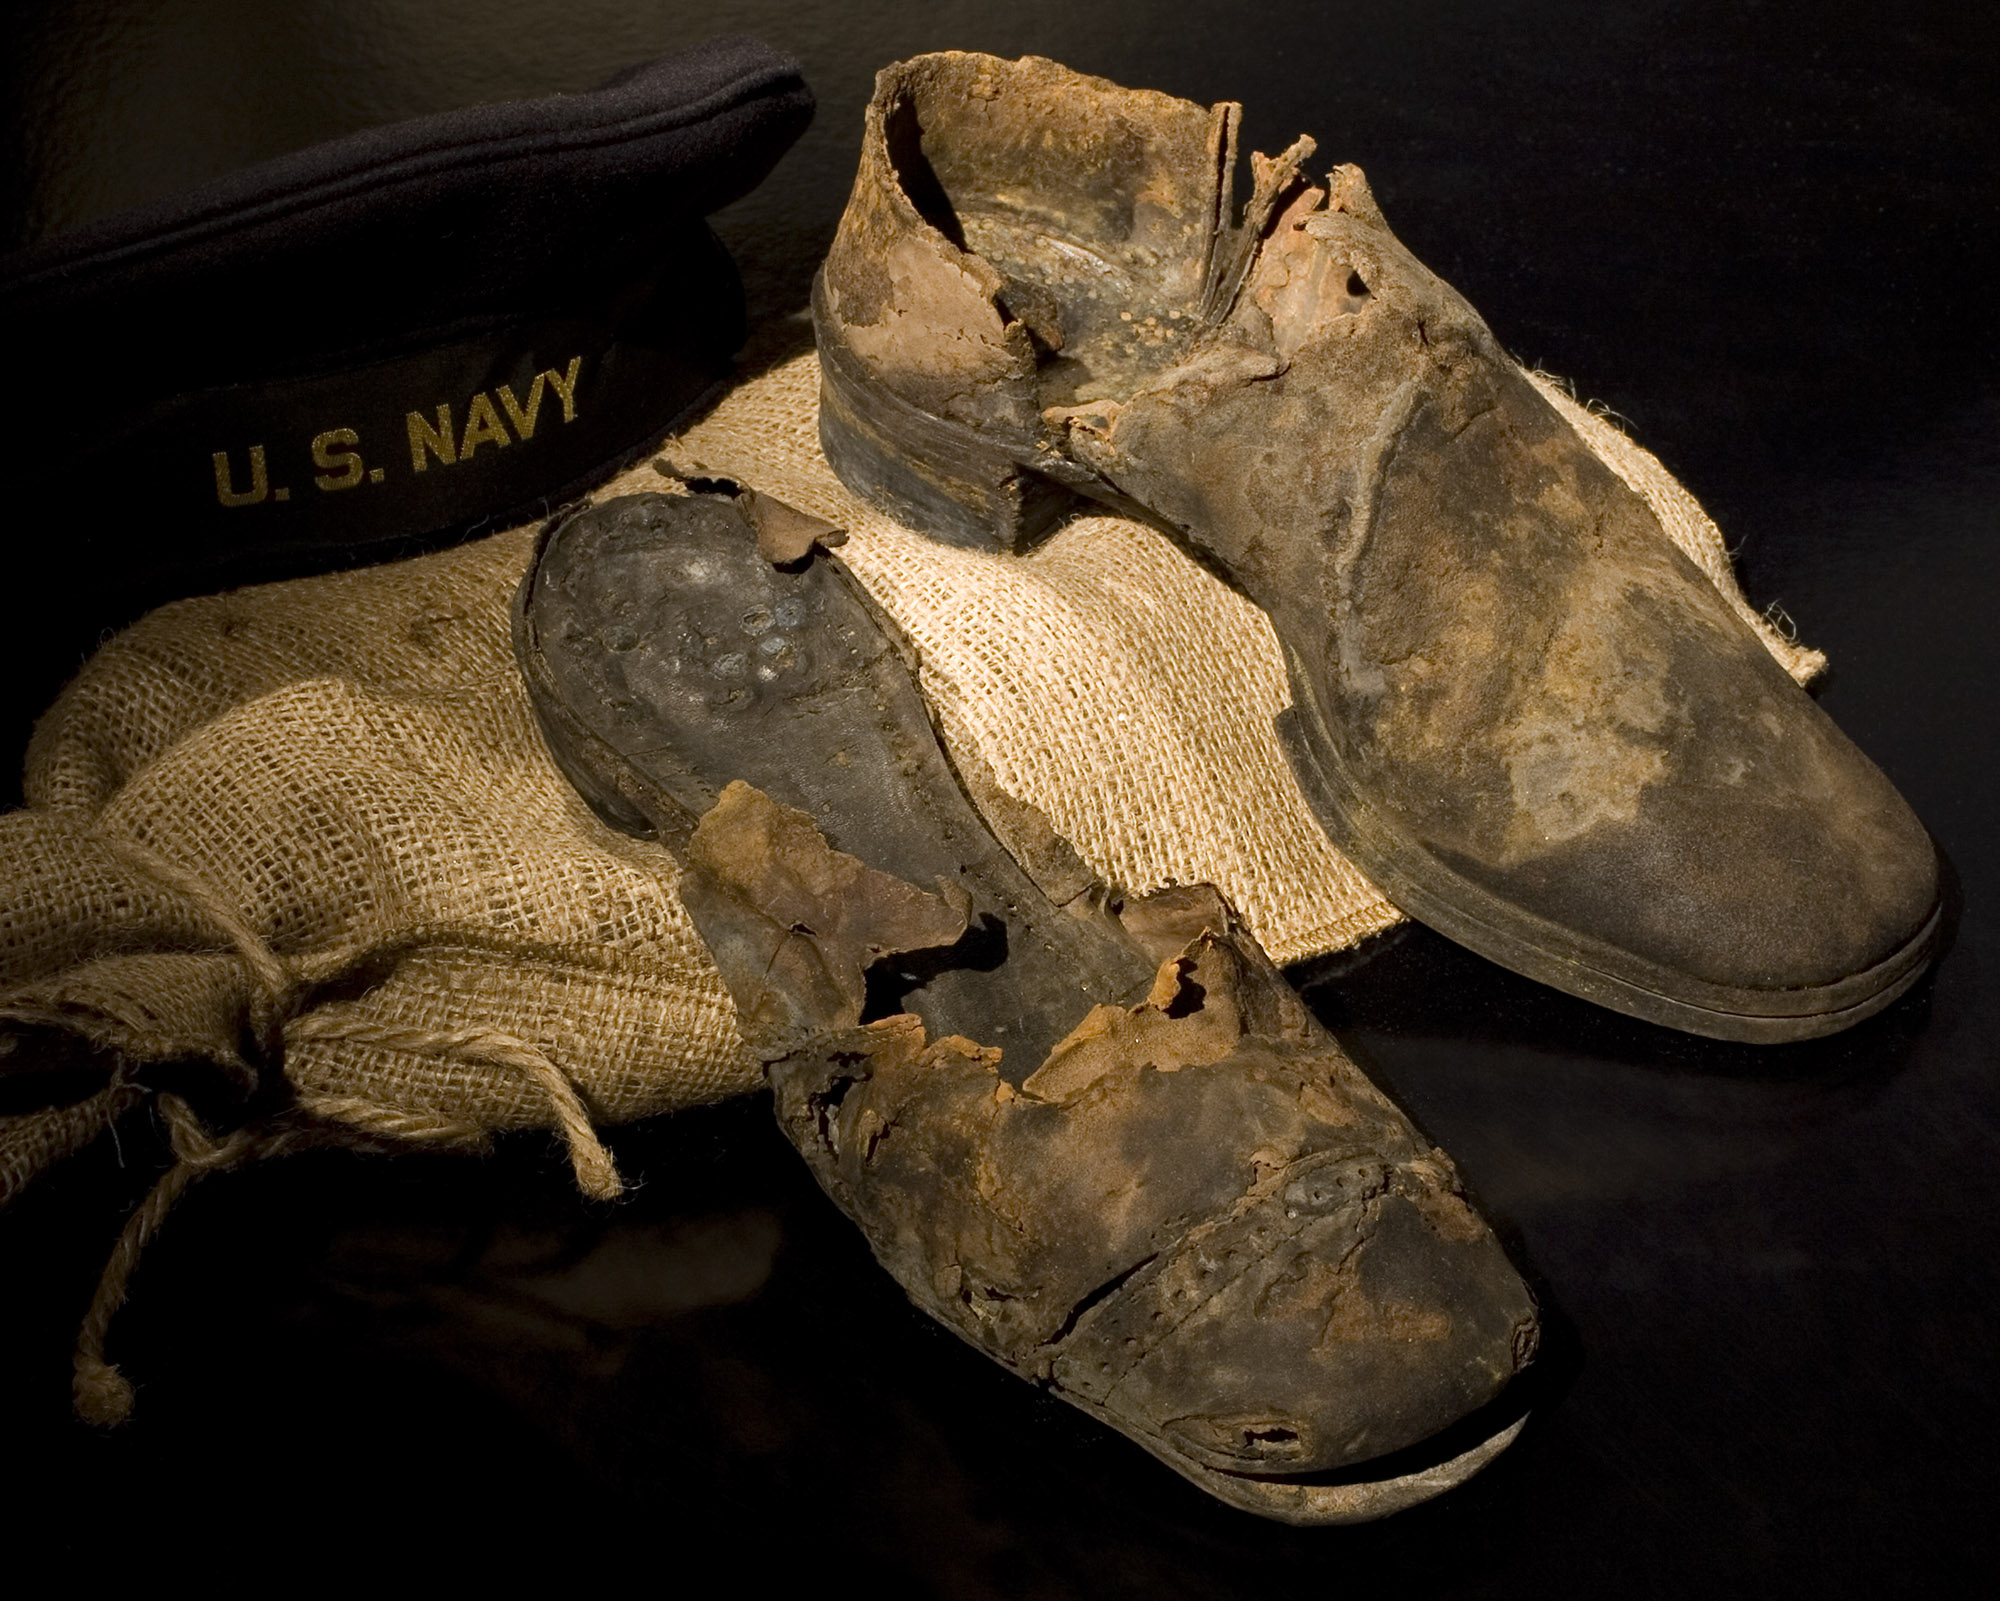 Two leather shoes found in the Monitor's turret, recovered in 2002